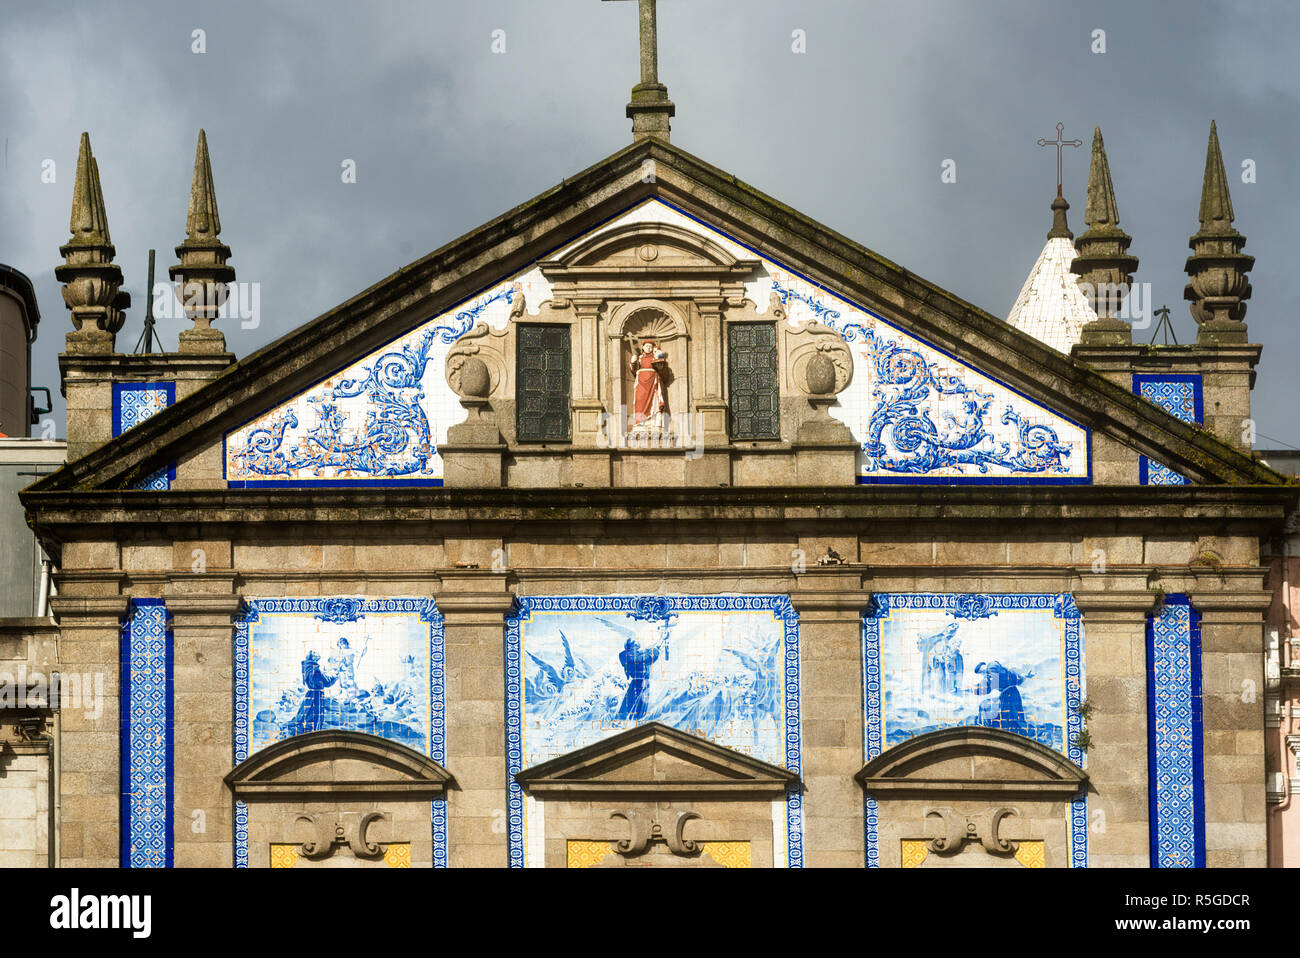 facade and pediment of the Church of St Anthony's Congregation in Porto, Portugal - Stock Image